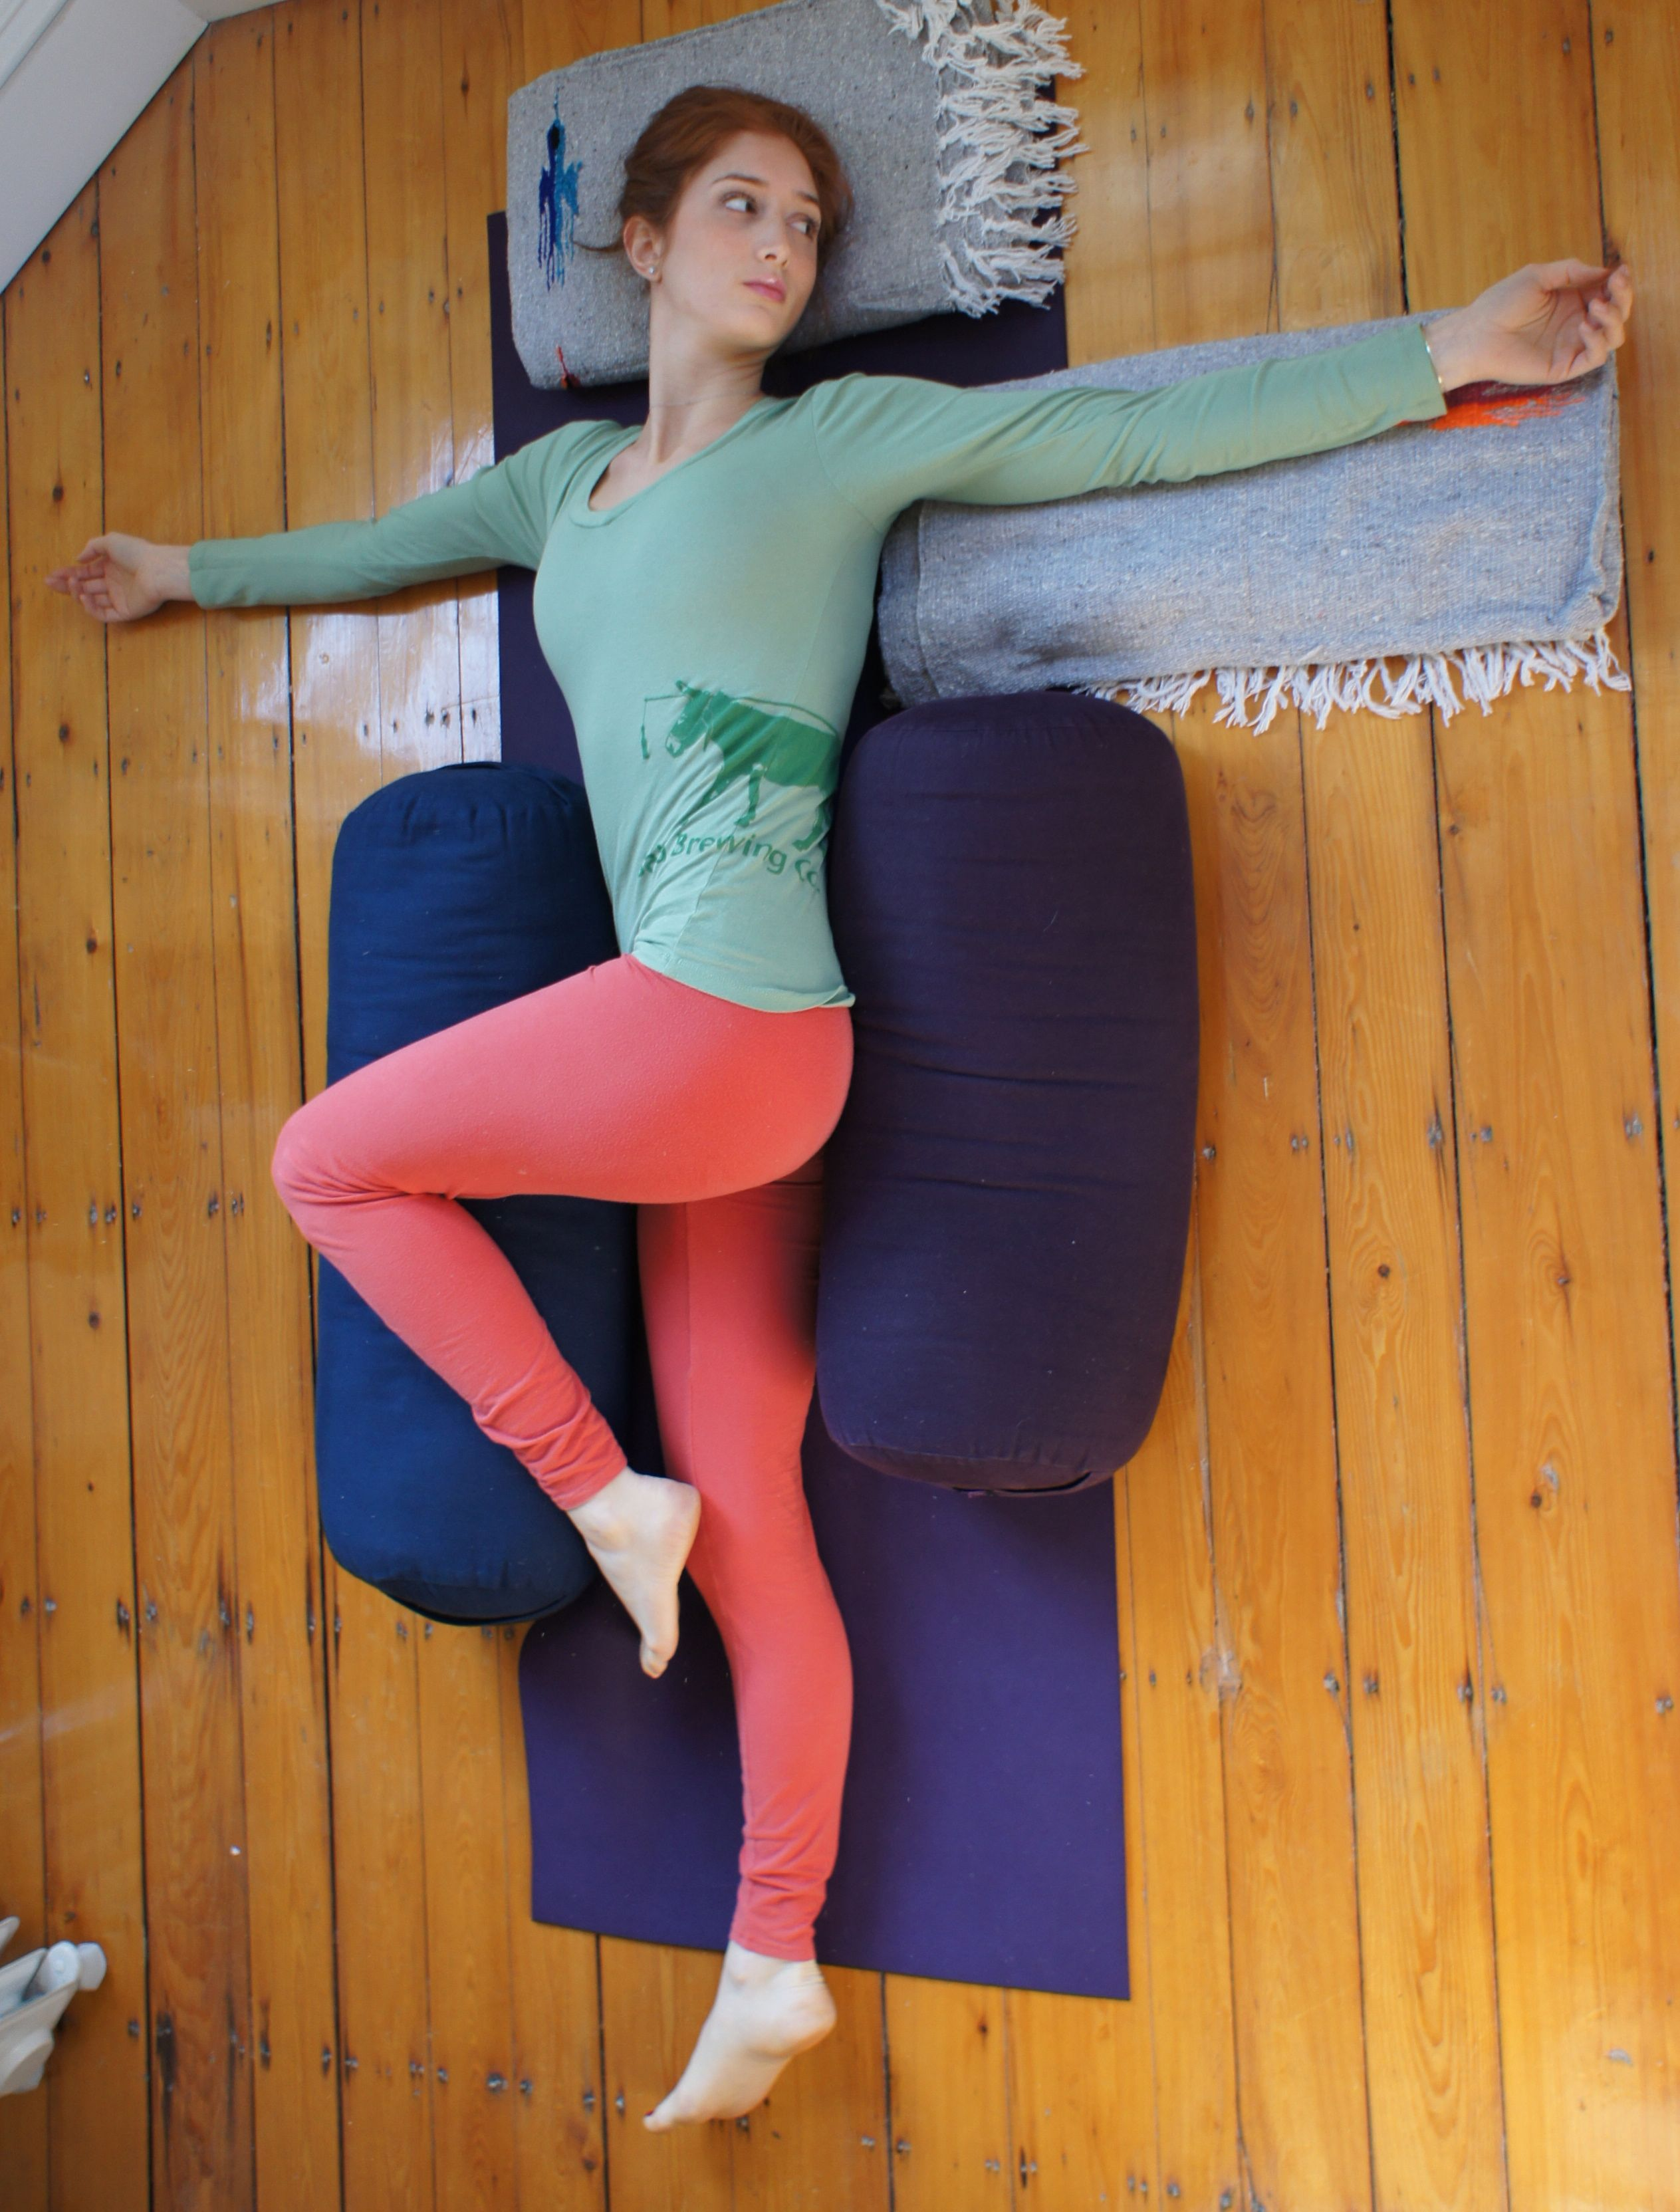 7 Steps To Prime Your Home Yoga Practice